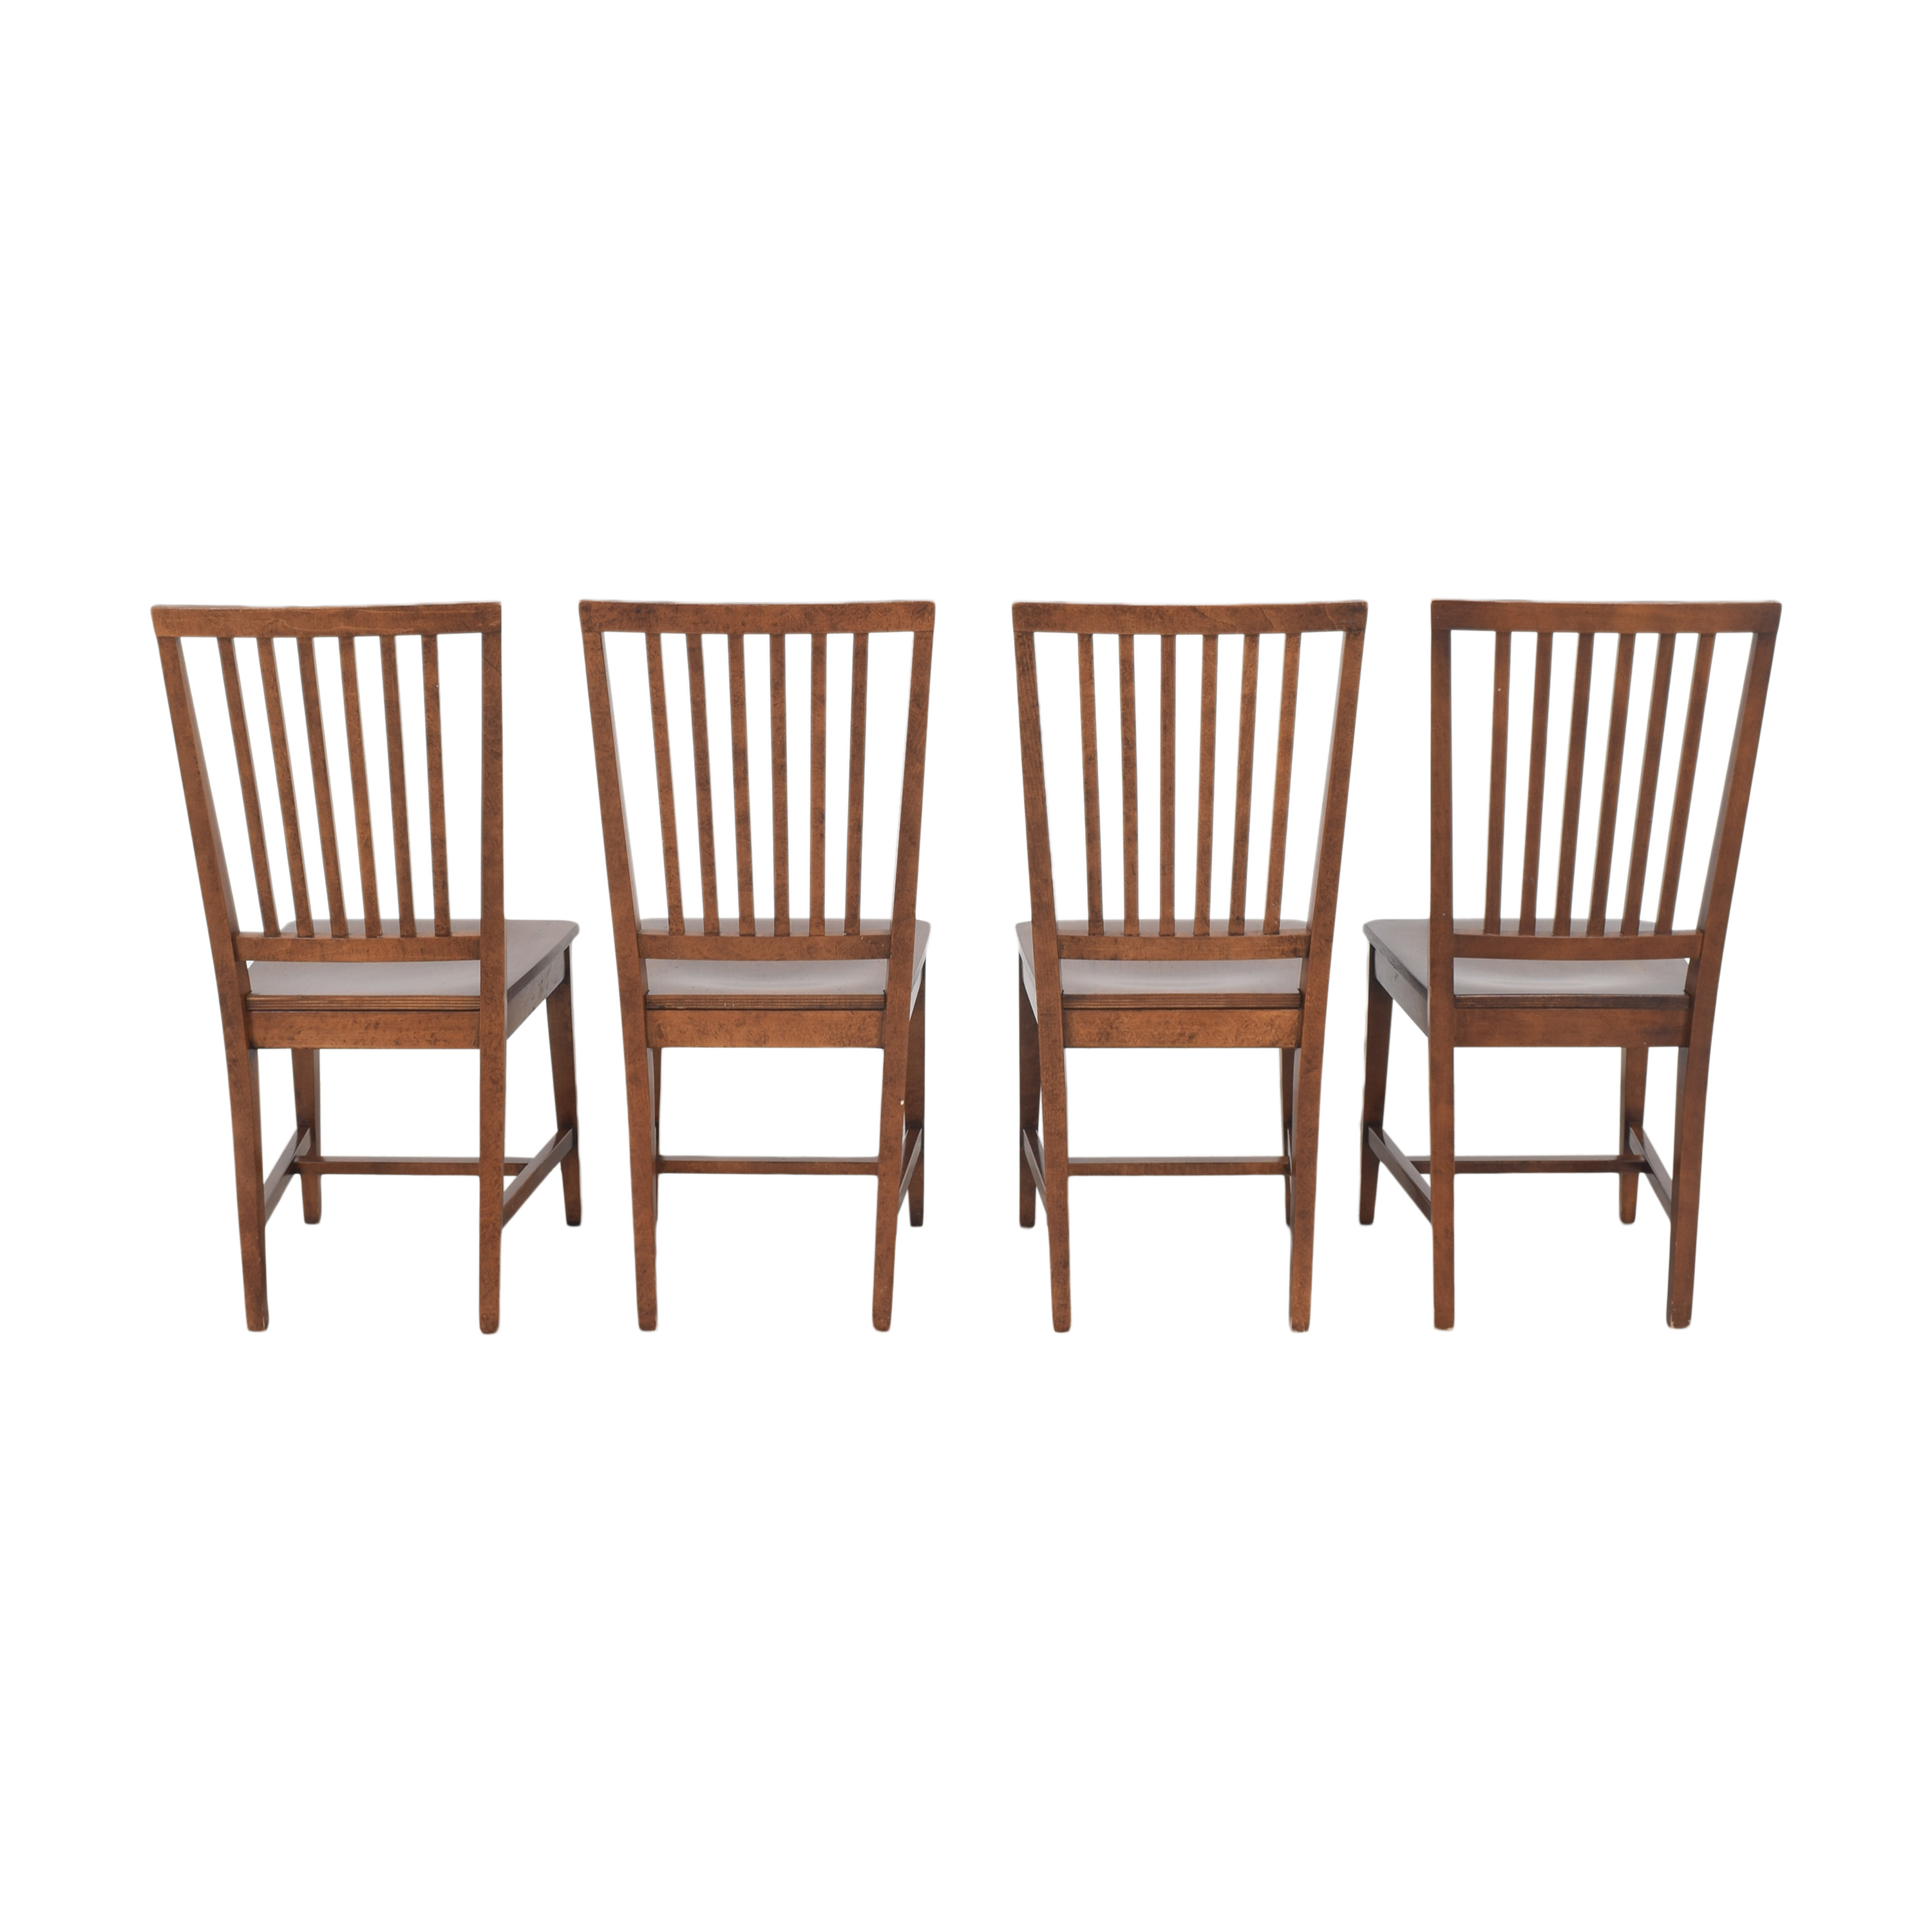 buy Crate & Barrel Village Nero Noche Dining Chairs Crate & Barrel